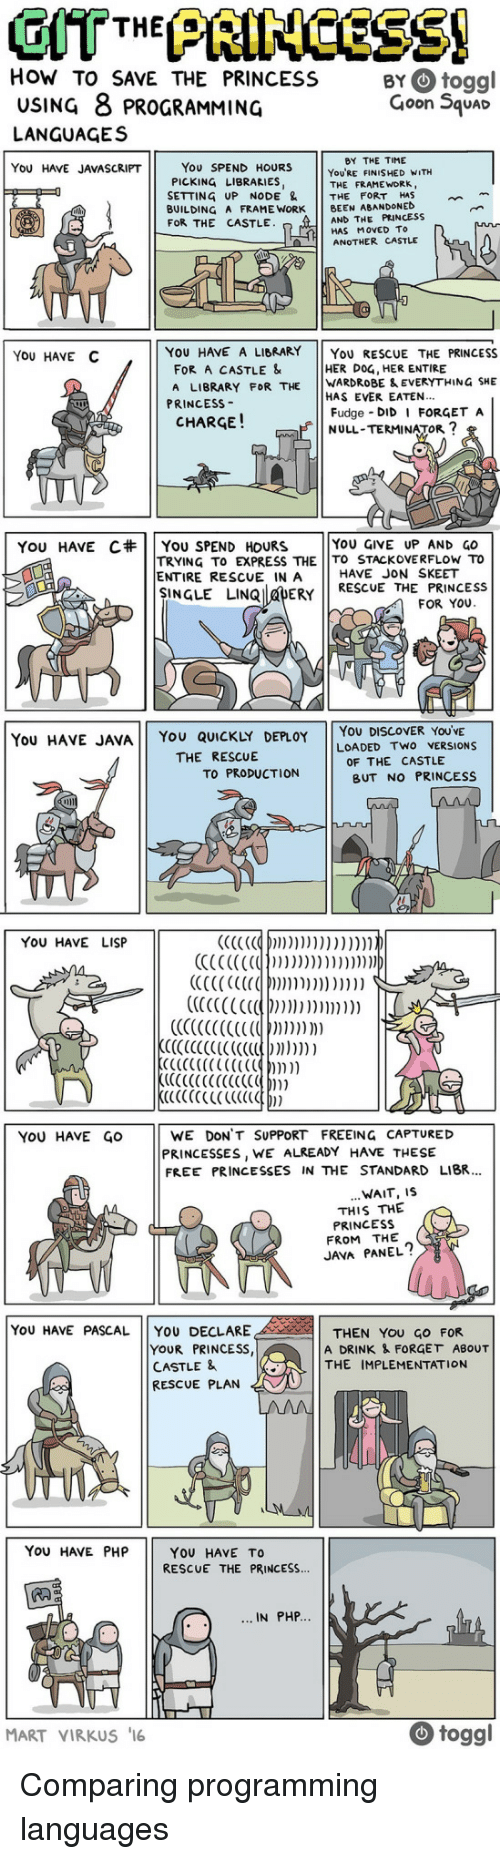 Work, Discover, and Express: How TO SAVE THE PRINCESS BYtoggl  USING 8 PROGRAMMING  Goon 5quac  LANGUAGES  BY THE TIME  YoU'RE FINISHED WITH  THE FRAME WORk,  You SPEND HOURS  PICKING LIBRARIES,  SETTING UP NODE THE FORT HAS  BUILDING A FRAME WORK BEEN ABANDONED  FOR THE CASTLE  YOU HAVE JAVASCRIPT  AND THE PRINCESS  HAS MoVED To  ANOTHER CASTLE  YOU HAVE C  YOU HAVE A LIBRARY YoU RESCUE THE PRINCESS  FOR A CASTLE &  A LIBRARY FOR THE WARDROBE & EVERYTHING SHE  HER DOG, HER ENTIRE  HAS EVER EATEN..  Fudge DID FORGET A  NULL-TERMINATOR  PRINCESS-  CHARGE!  YOU GIVE UP AND GO  TRYING TO EXPRESS THE TO STACKOVERFLOw To  YOU HAVE C#    You SPEND HOURS  ENTIRE RESCUE IN A  HAVE JON SKEET  NGLE LINQ DERY RESCUE THE PRINCESS  FOR YOU  You  HAVE JAVAYou QUICKLY DEPLOY   You DiSCOVER YOu'vE  LOADED TWO VERSIONS  THE RESCUE  OF THE CASTLE  TO PRODUCTION  BUT NO PRINCESS  YOU HAVE LISP  CCCCCC(OCIm  YoU HAVE GOWE DON'T SUPPORT FREEING CAPTURED  PRINCESSES, WE ALREADY HAVE THESIE  FREE PRINCESSES IN THE STANDARD LIBR.  WAIT, IS  THIS THE  PRINCESS  FROM THE  JAVA PANEL?  YoU HAVE PASCAL YOU DECLARE  YOUR PRINCESS  CASTLE &  RESCUE PLAN  THEN YOU GO FOR  A DRINK & FORGET ABOUT  THE IMPLEMENTATION  You HAVE PHP  YOU HAVE TO  RESCUE THE PRINCESS...  IN PHP  MART VIRKus  togg Comparing programming languages